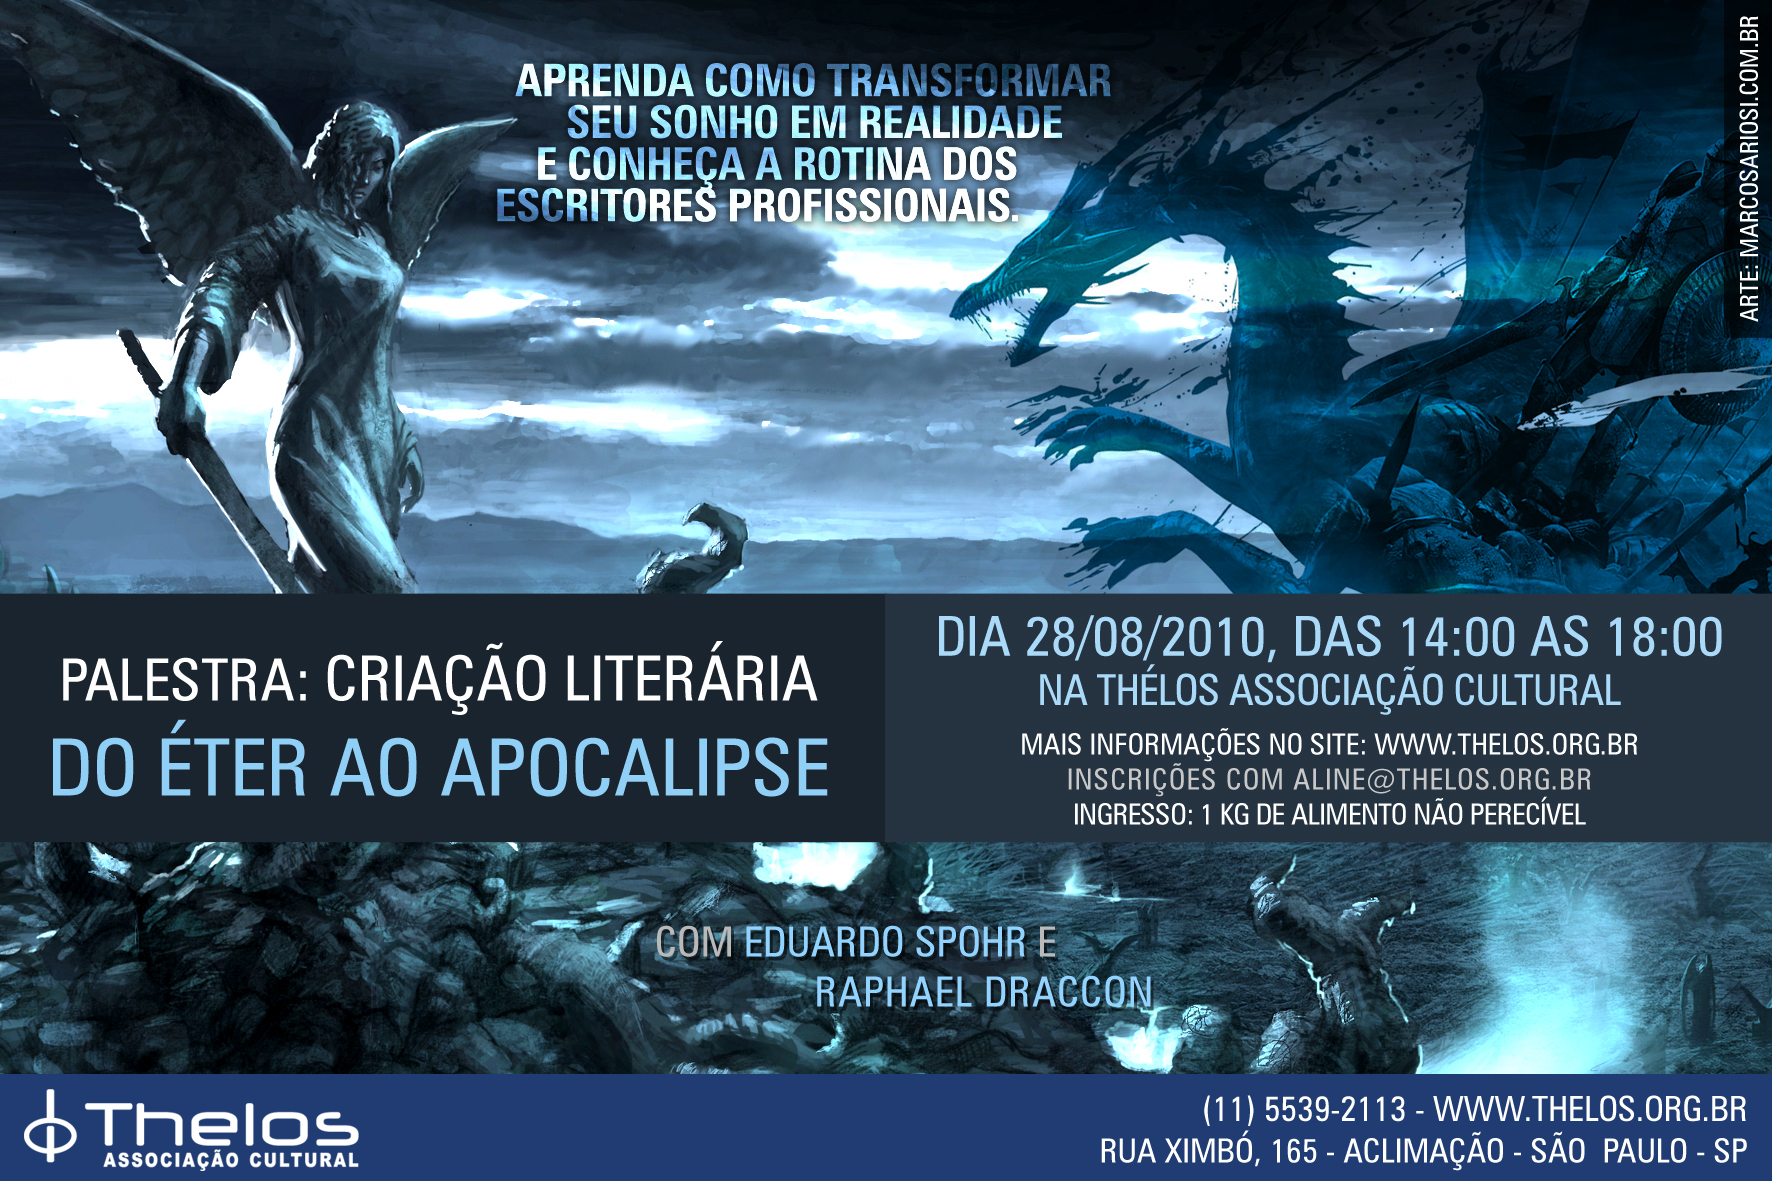 http://www.raphaeldraccon.com/blog/wp-content/uploads/flyer-10x15-agosto-2010-final5.jpg